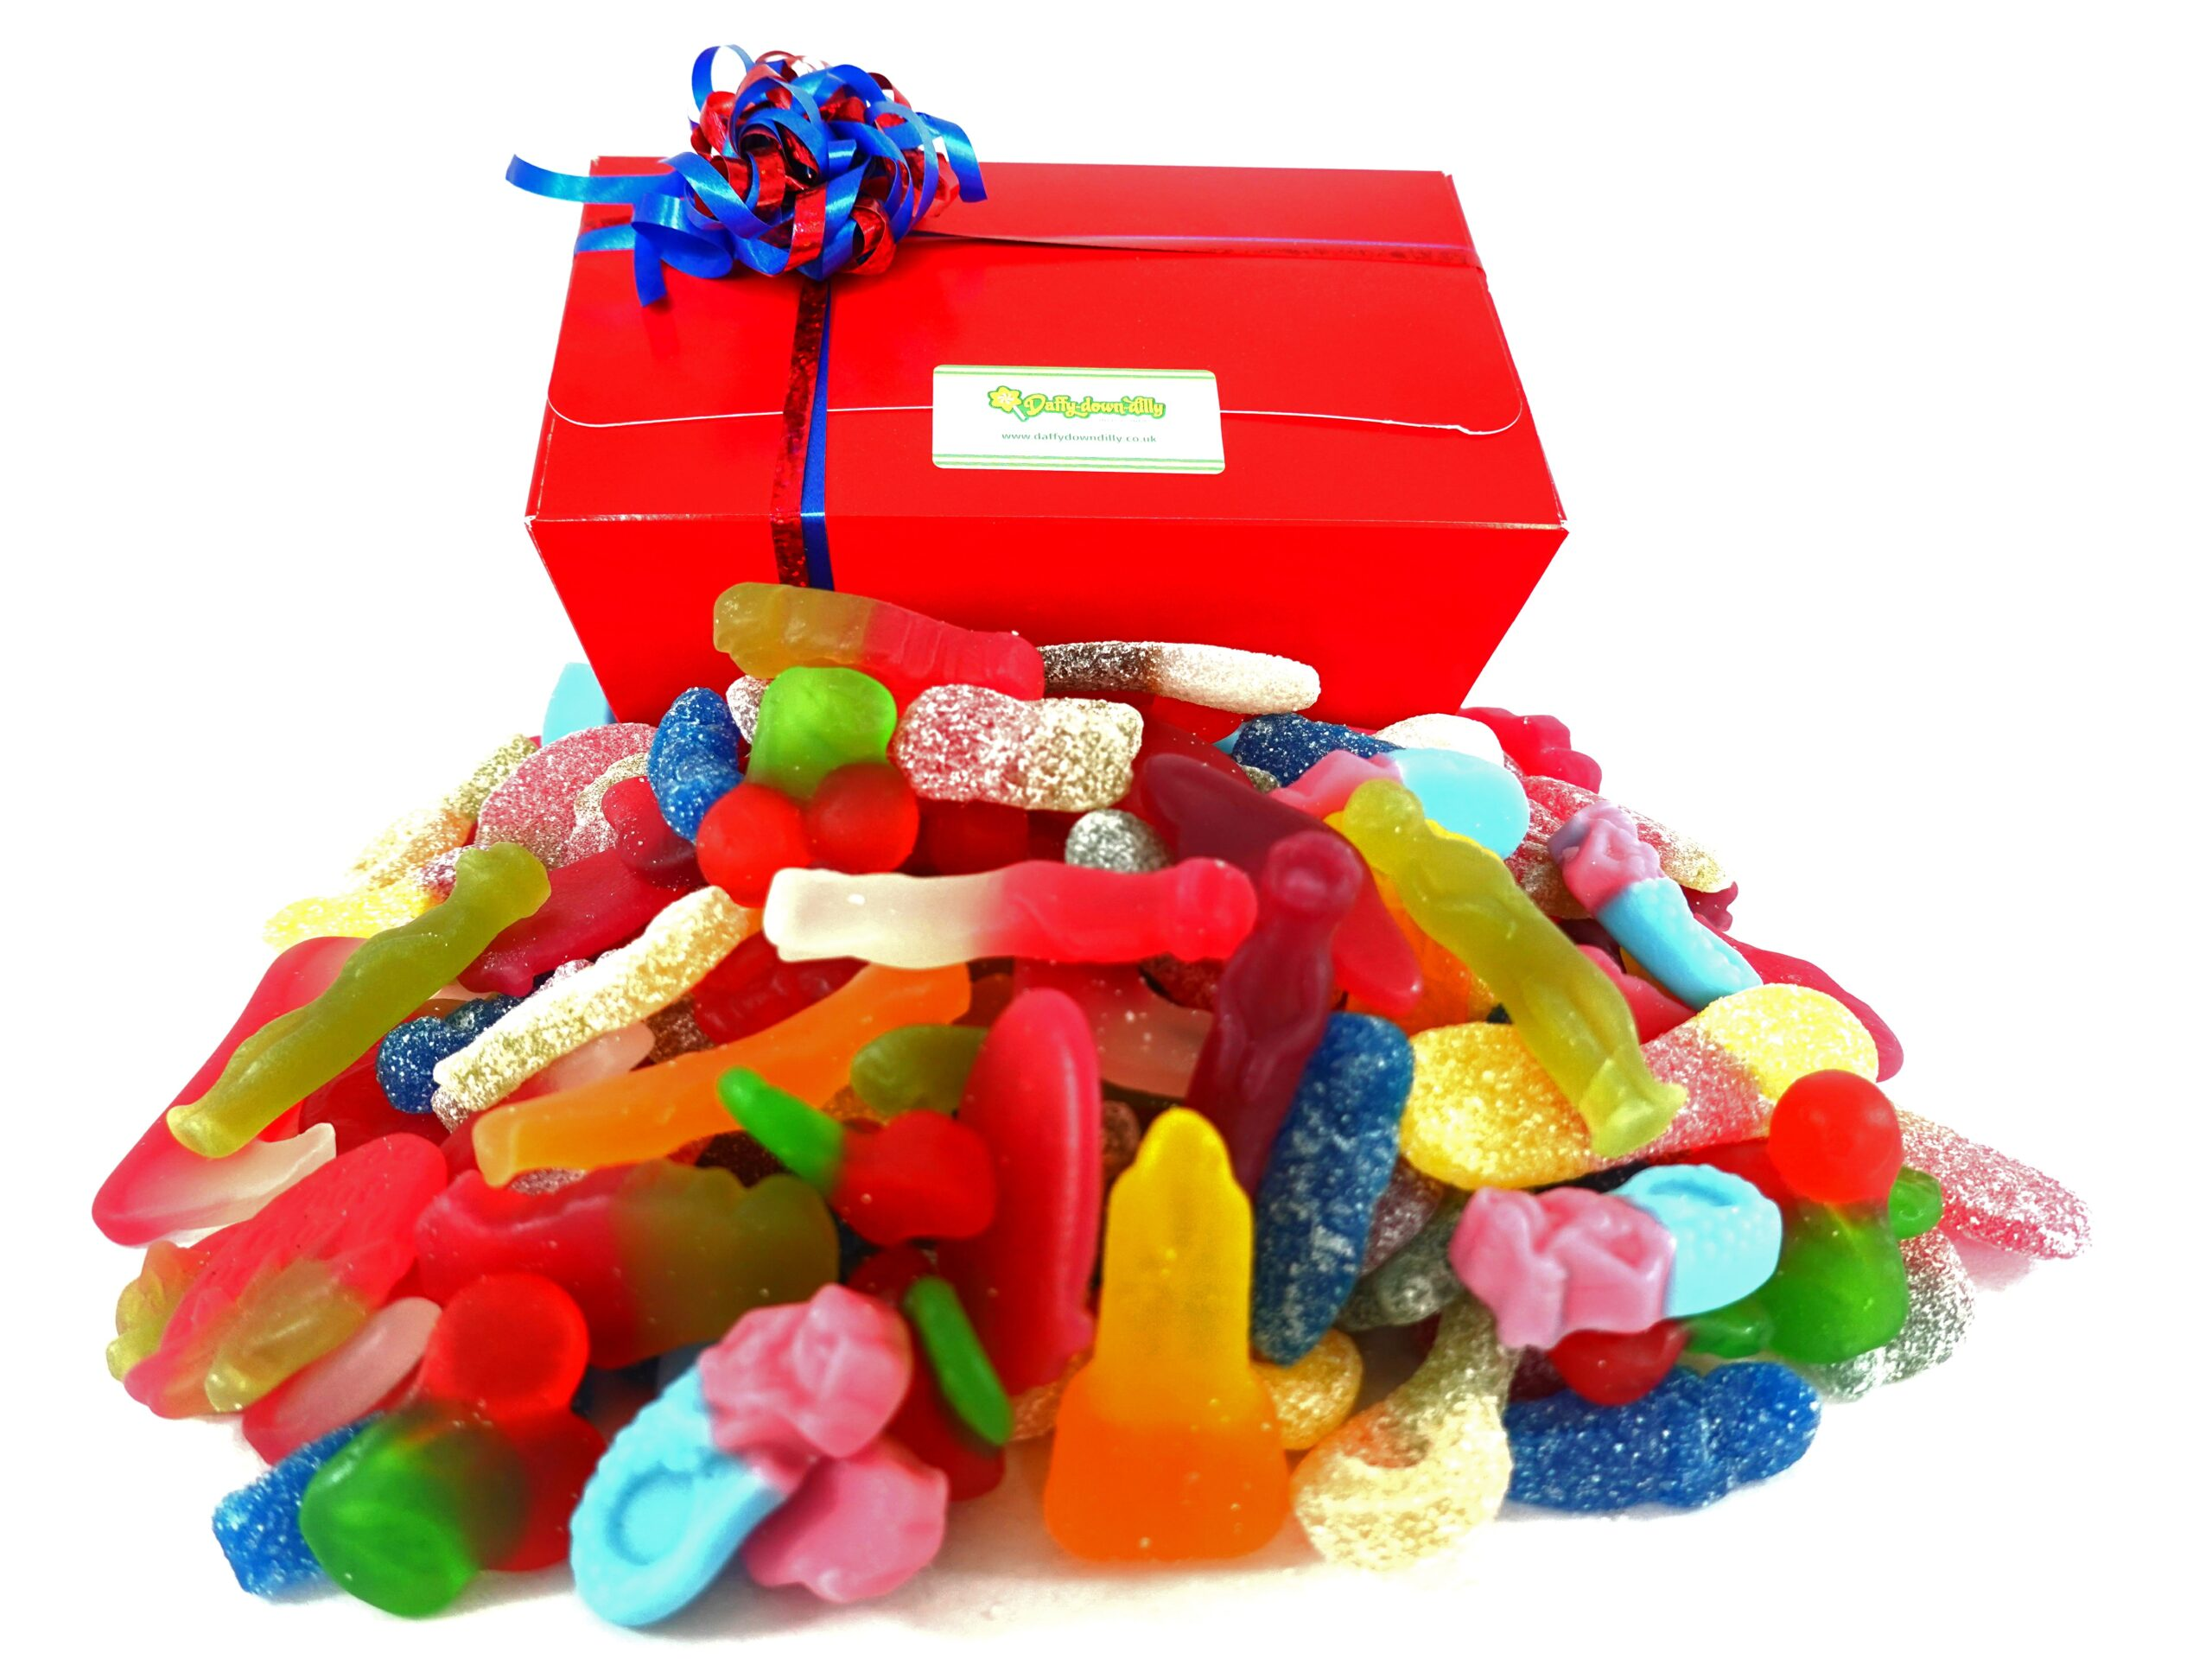 Vegan pick and mix sweet gift box